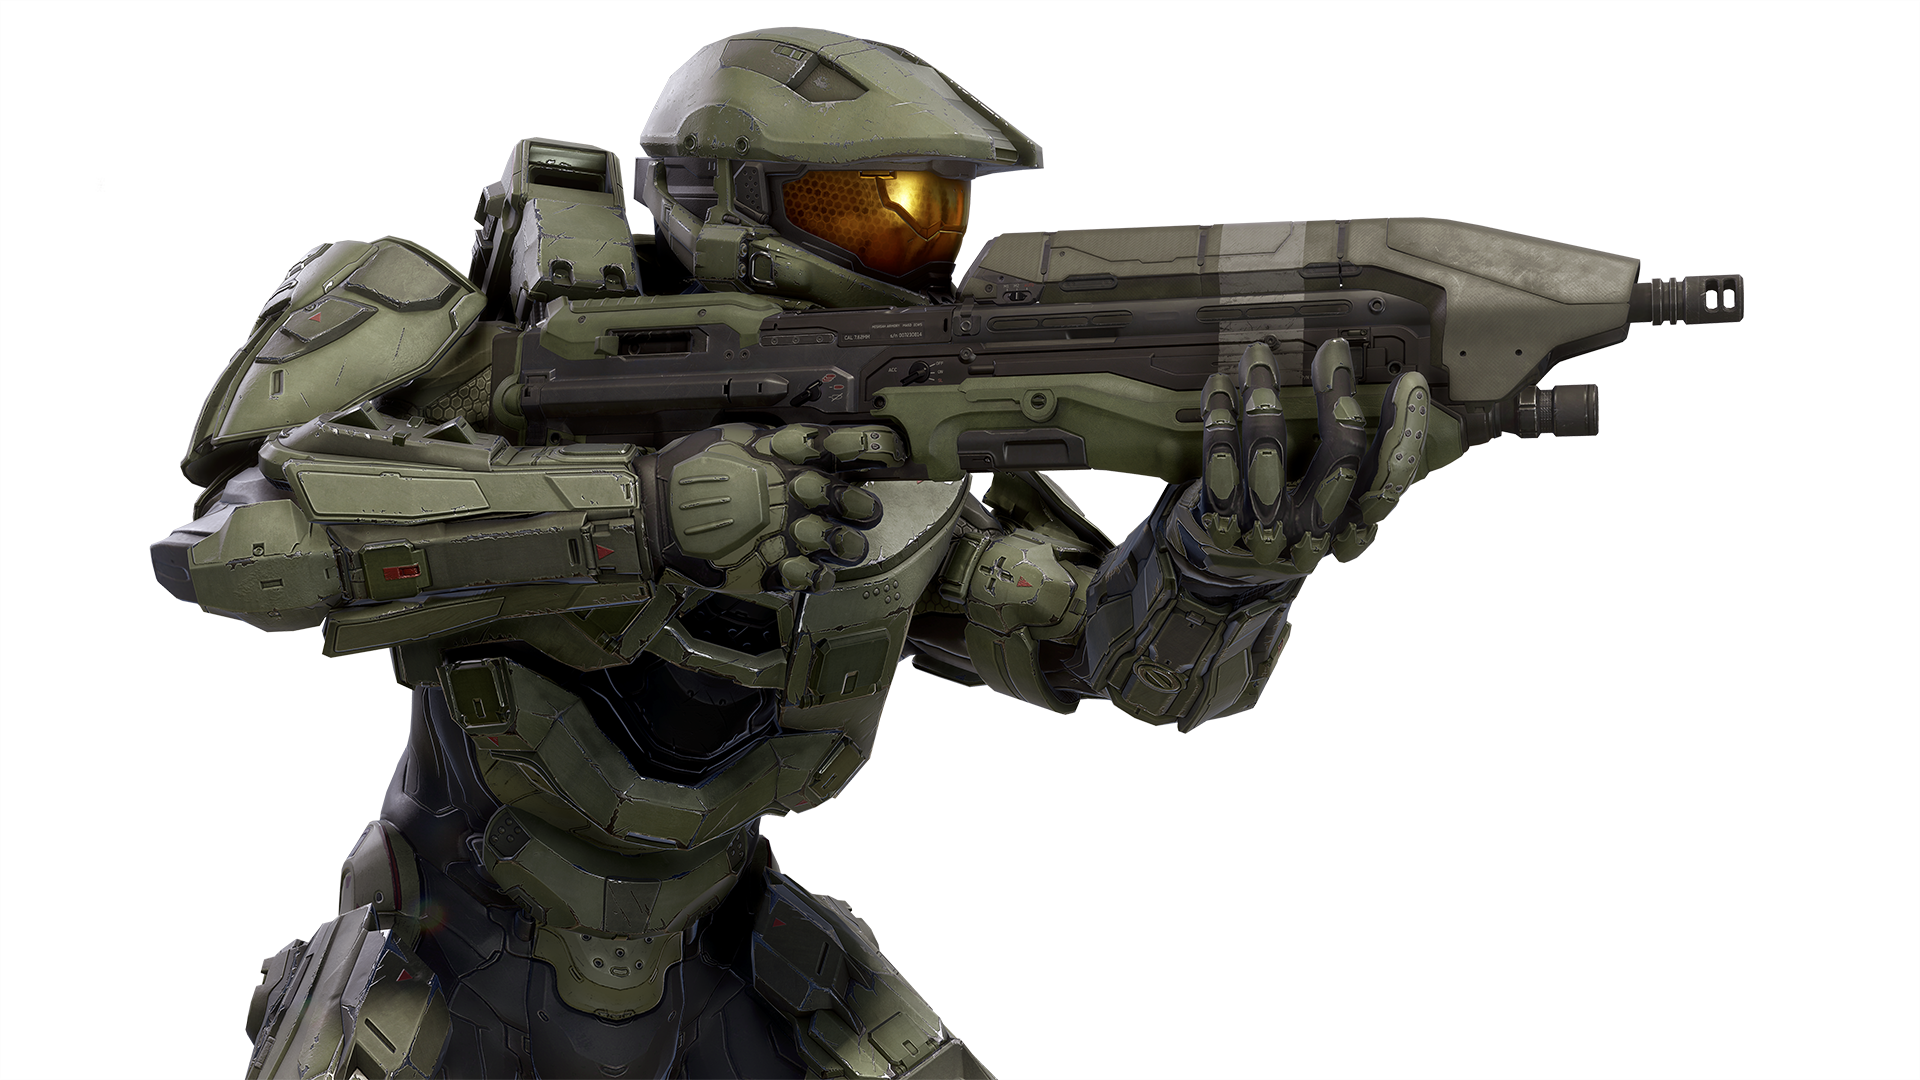 h5-guardians-render-master-chief-04.png